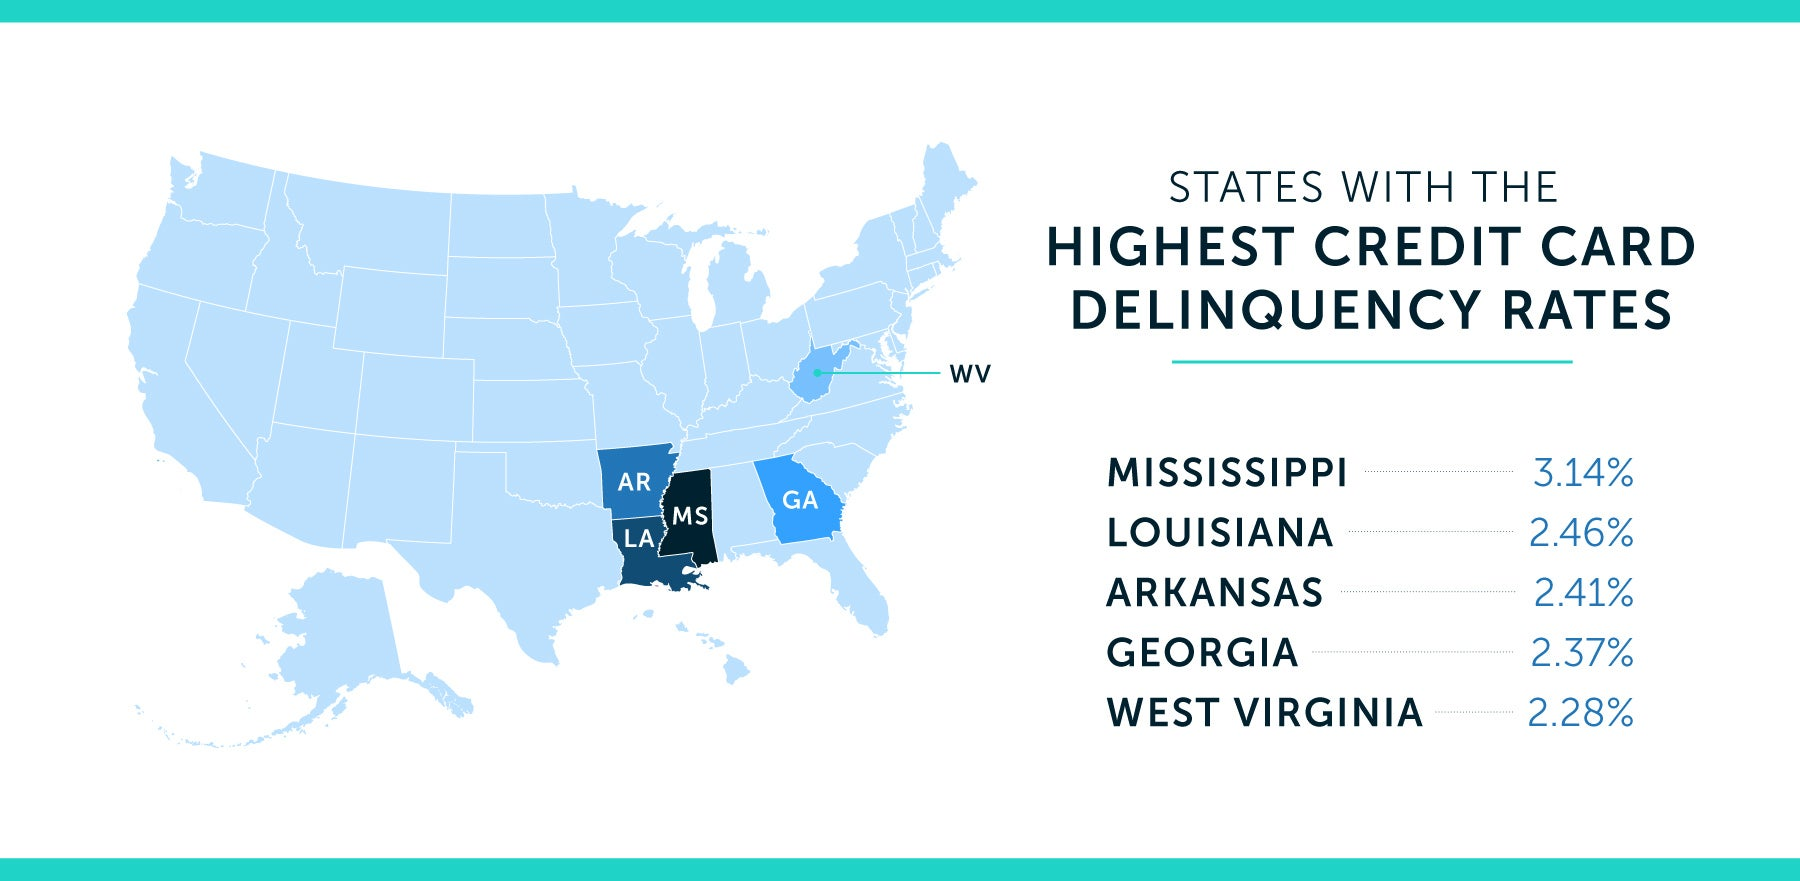 states with the highest credit card deliquency rates